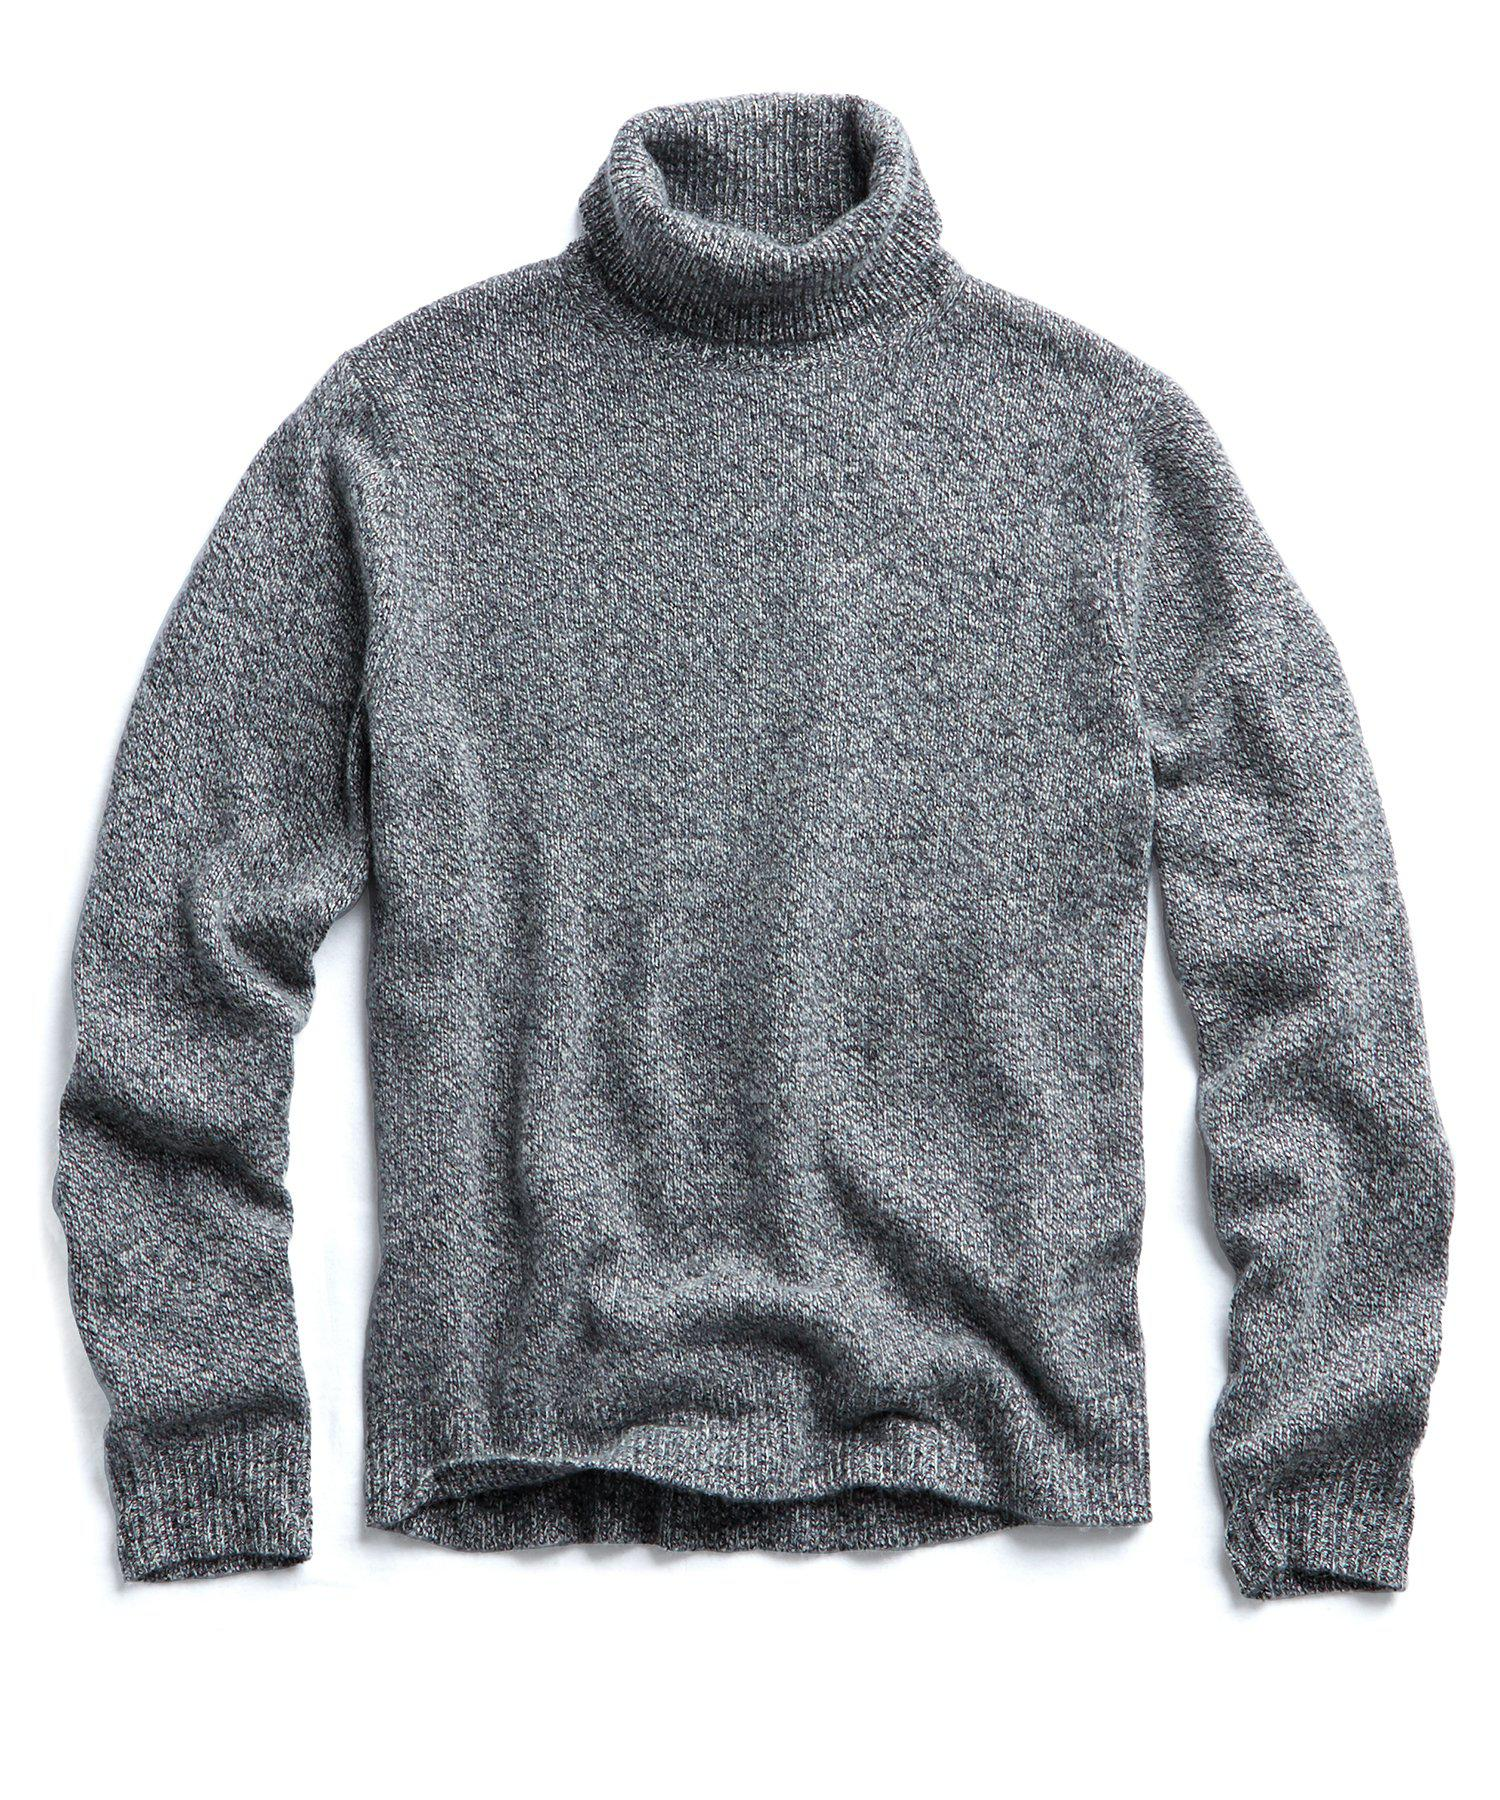 fe2be88b2 Todd Snyder Marled Chunky Cashmere Turtleneck In Grey Heather in ...